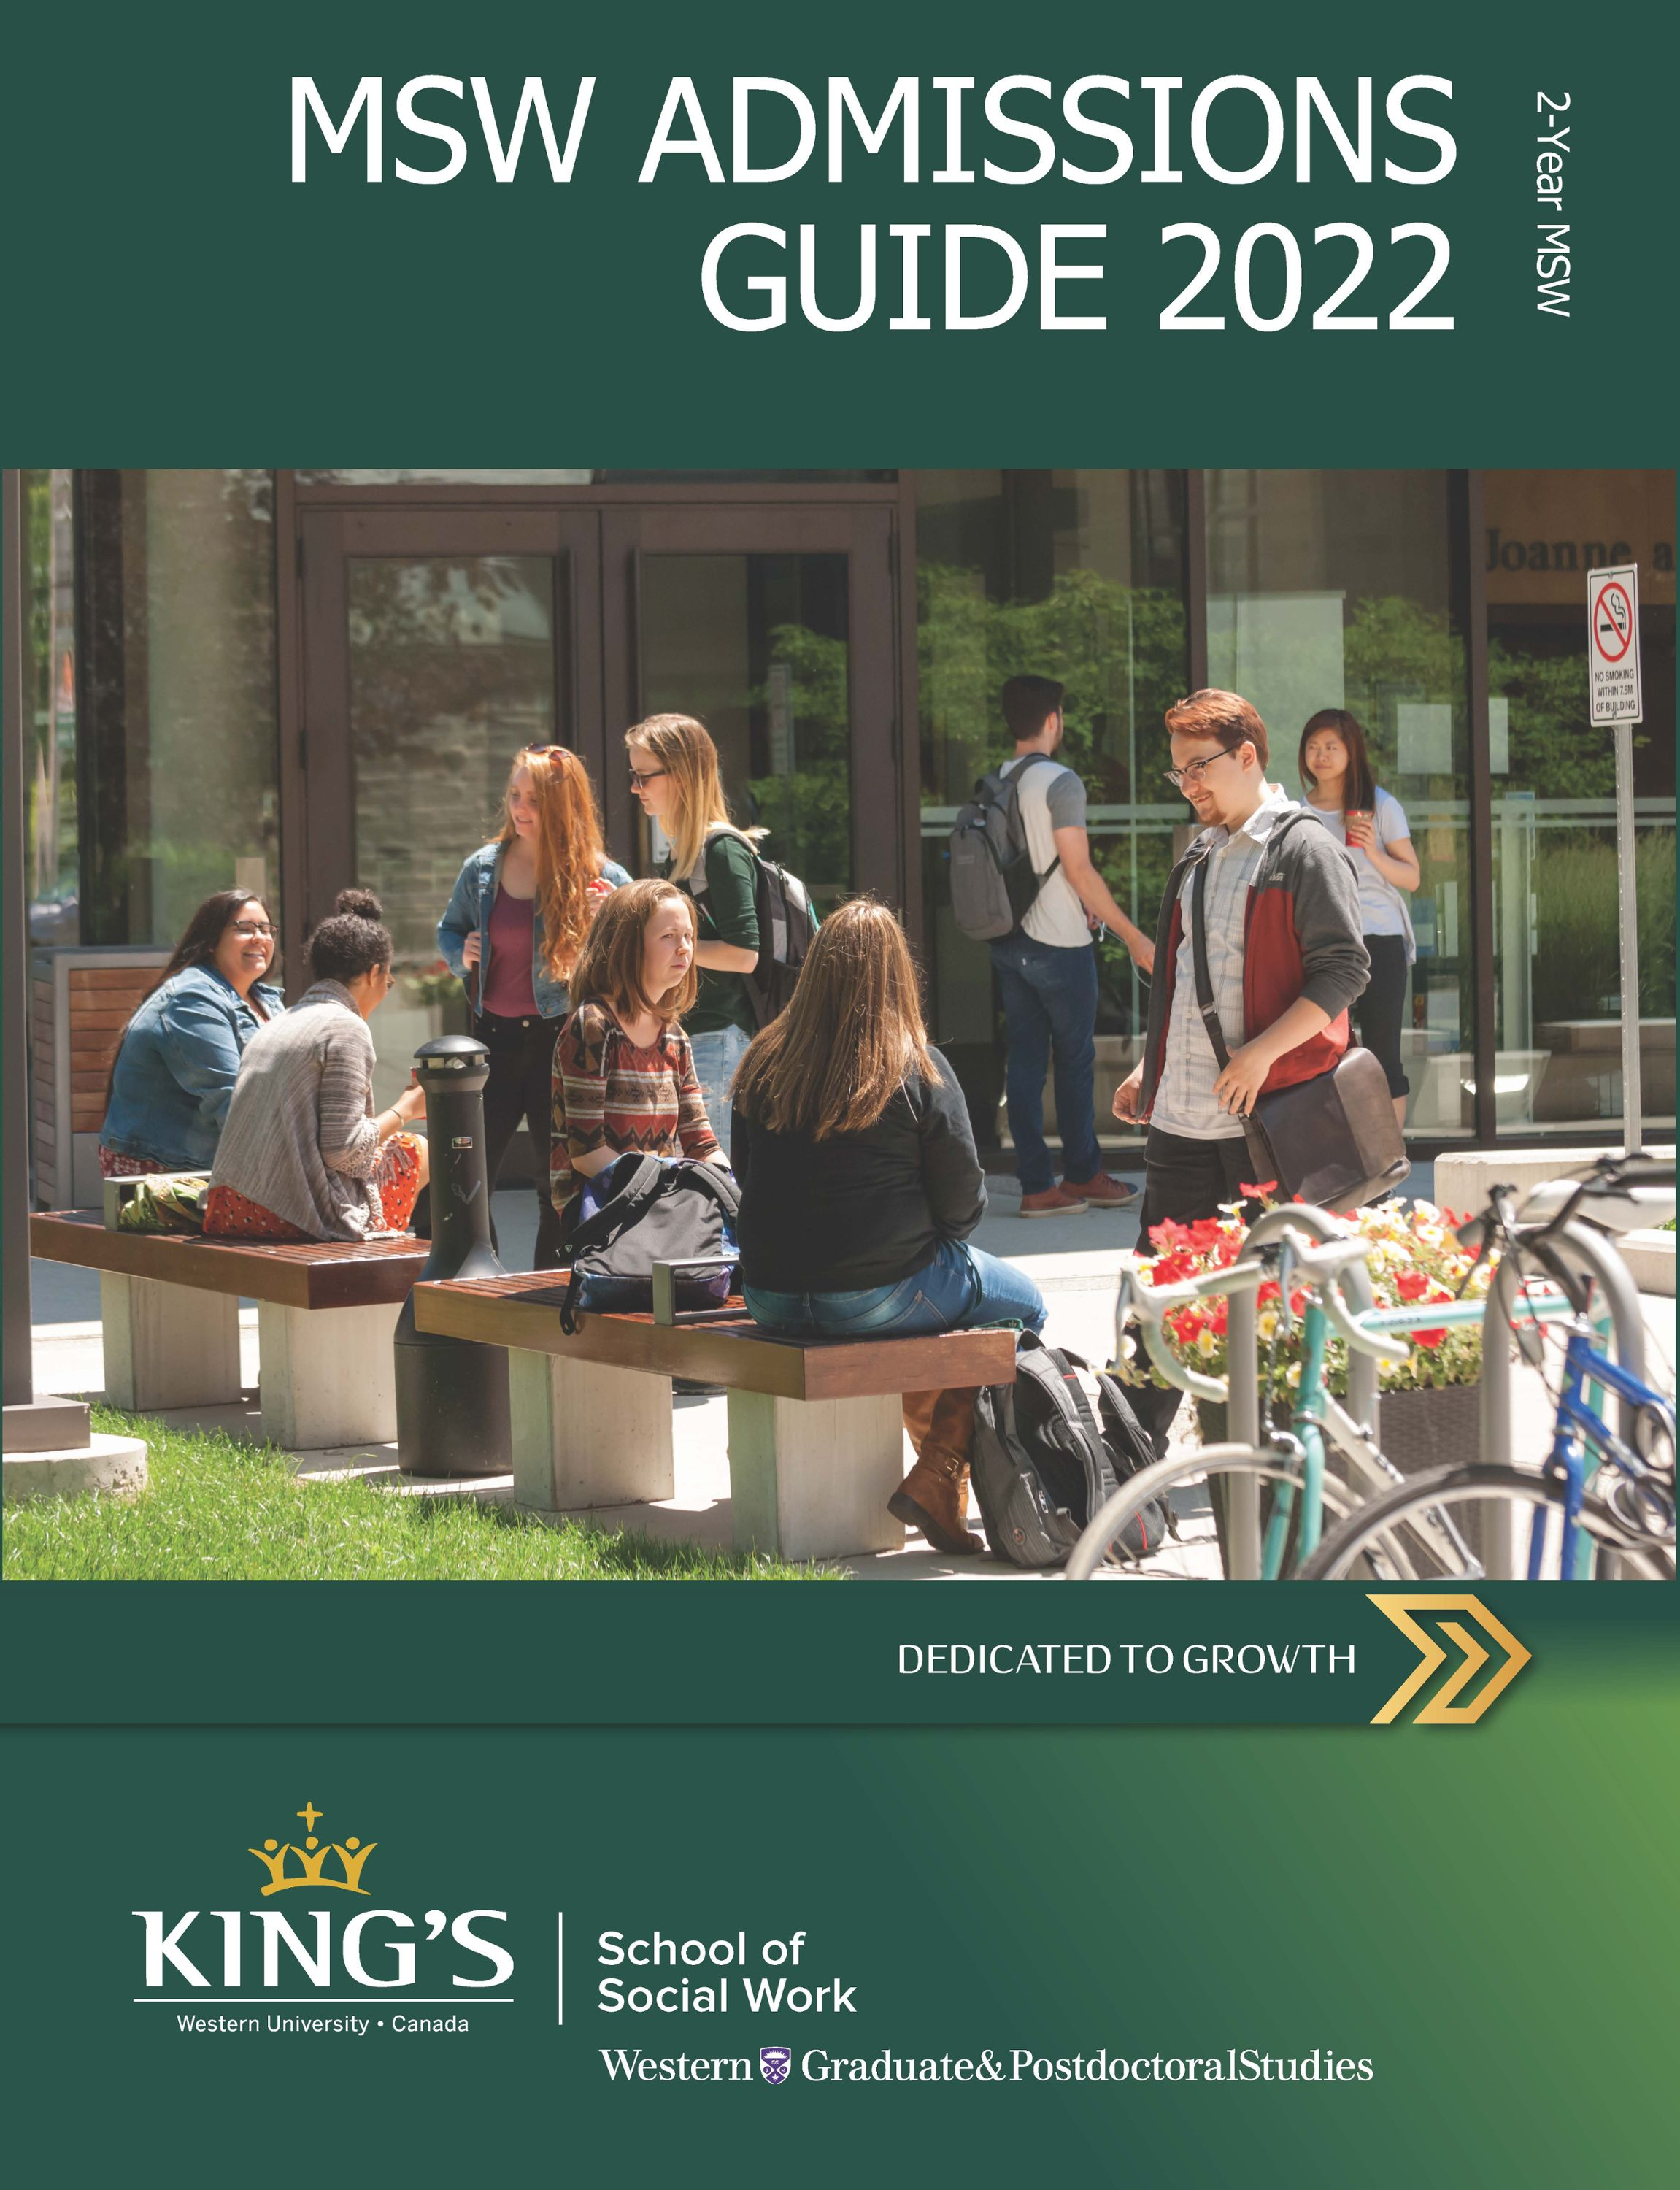 2-Year MSW Admissions Guide Download